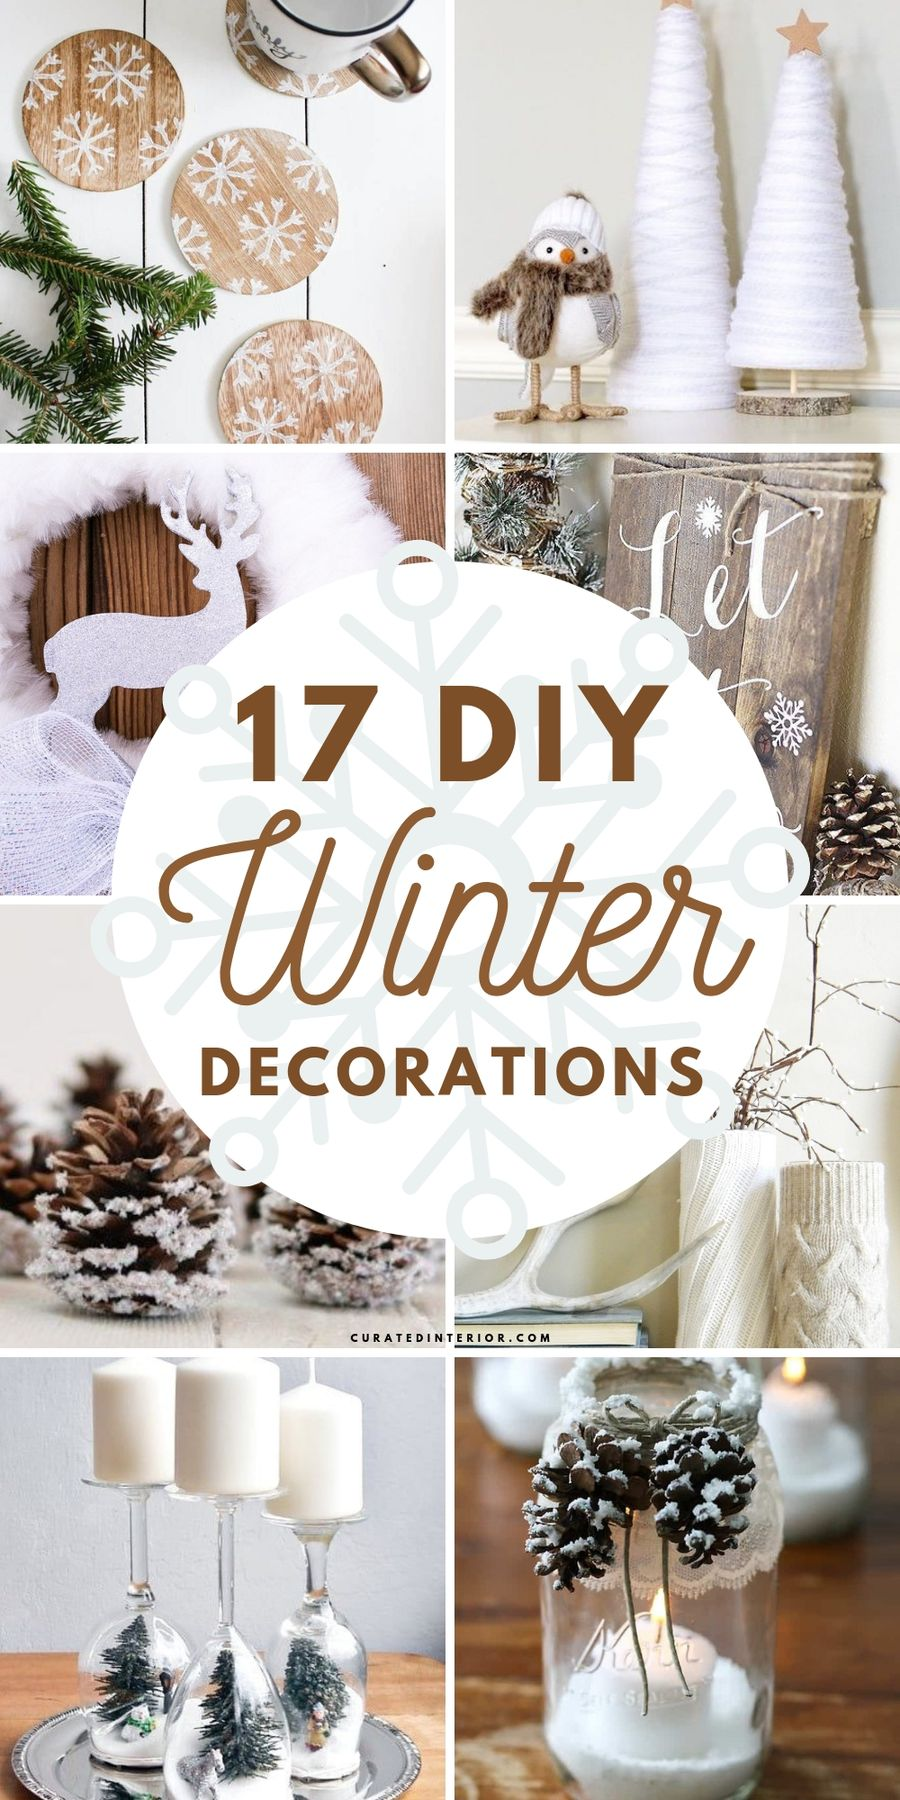 17 DIY Winter Decorations for the Home #DIY #DIYDecor